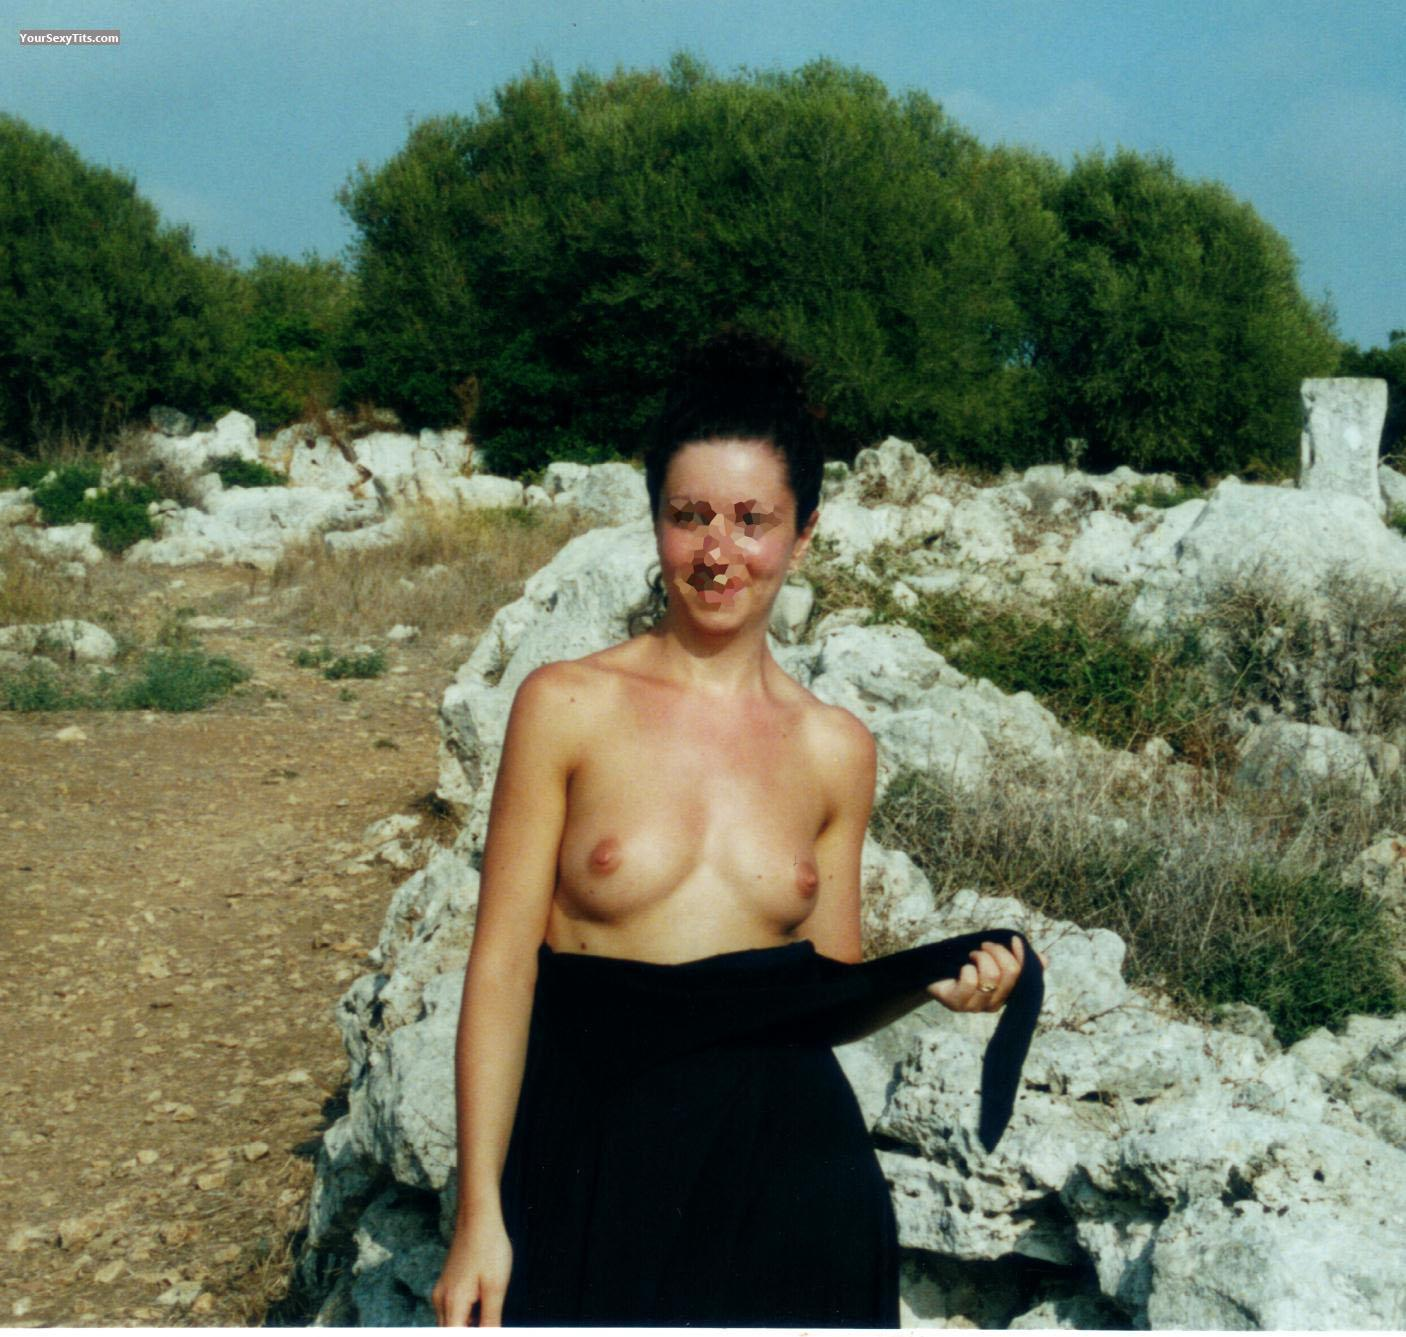 Tit Flash: Small Tits - Eva from Spain